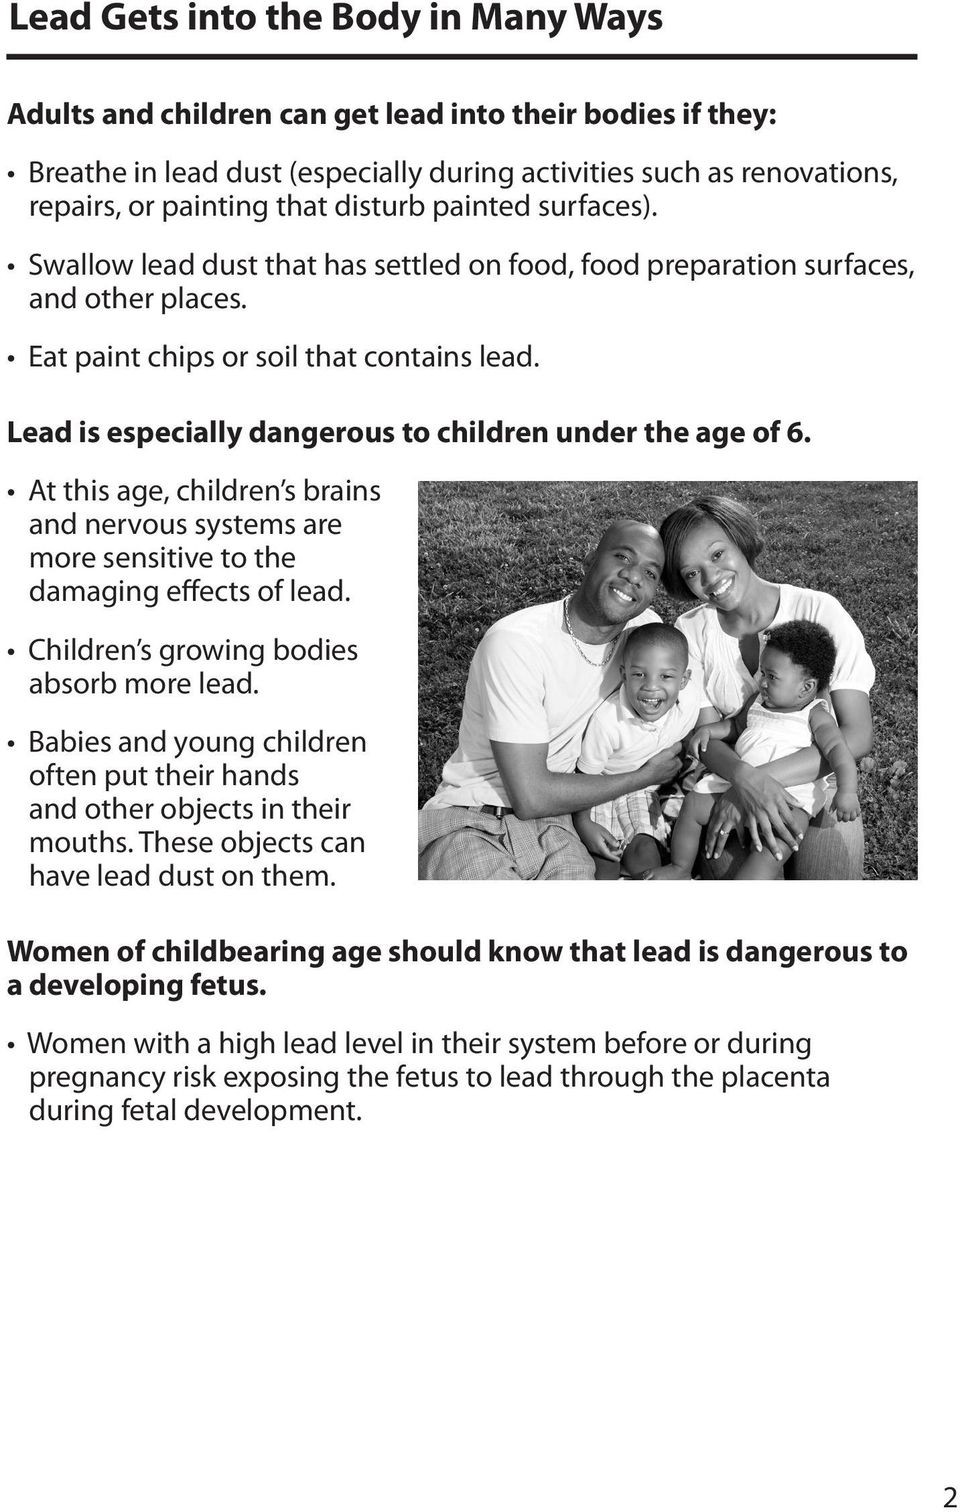 Lead is especially dangerous to children under the age of 6. At this age, children s brains and nervous systems are more sensitive to the damaging effects of lead.